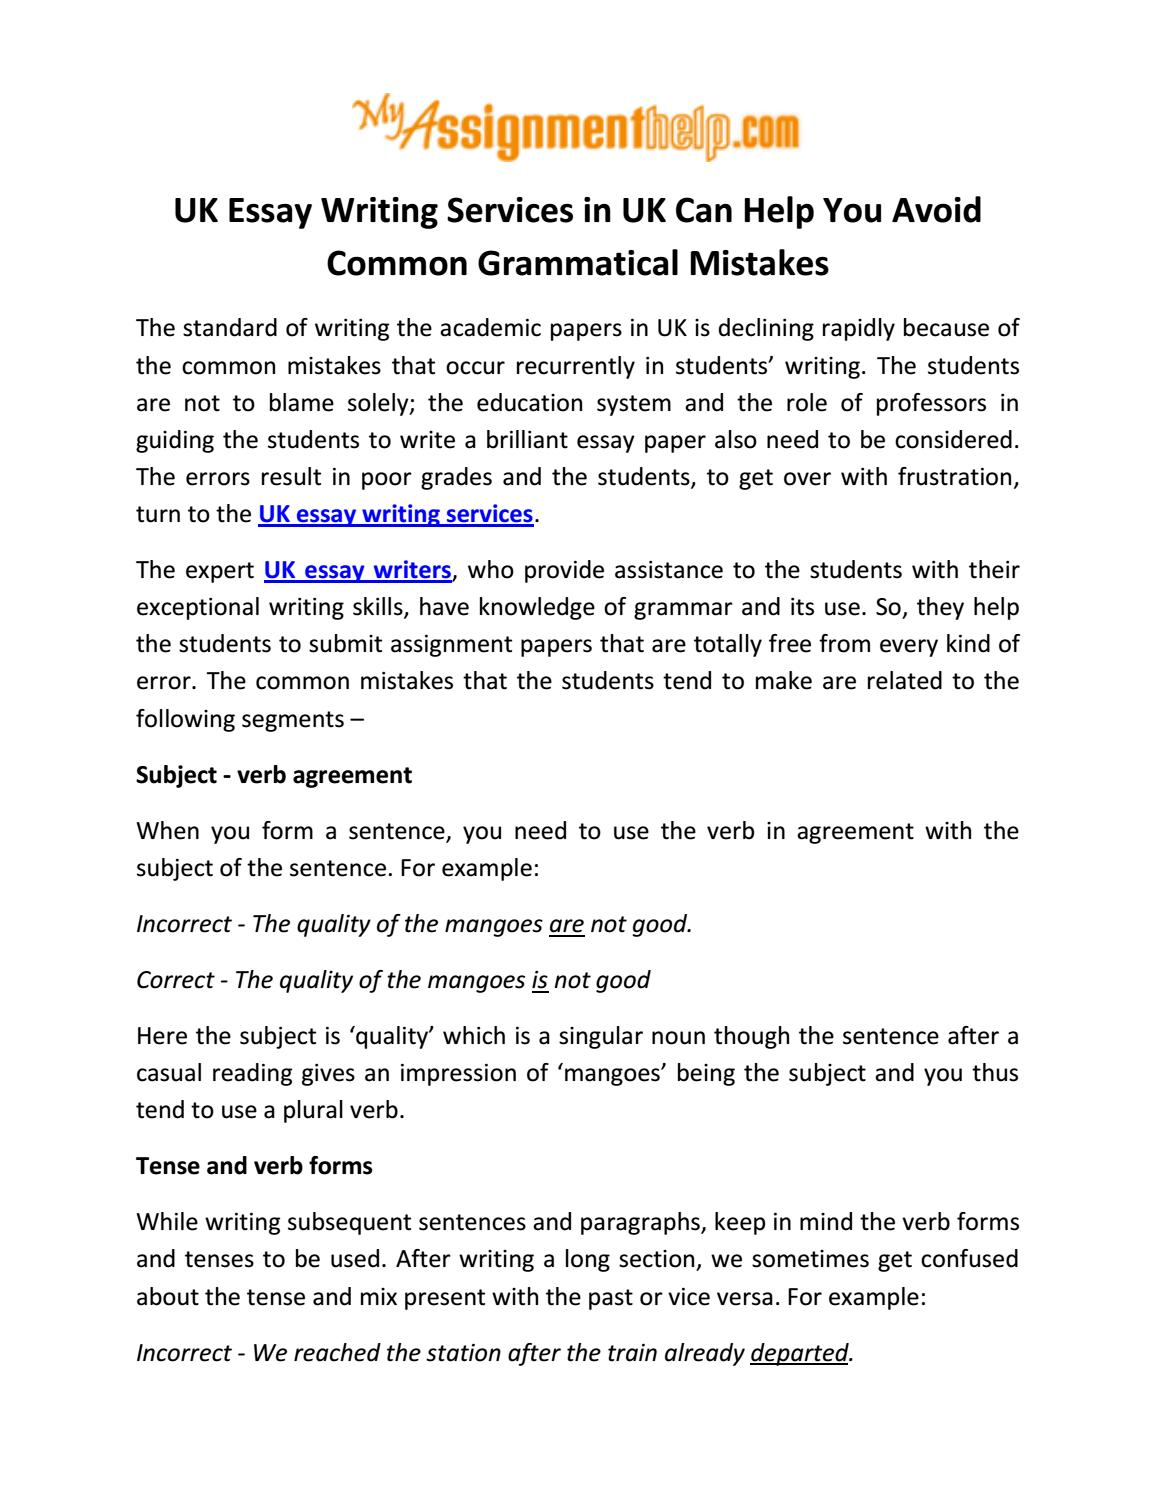 Persuasive Essay Outline Sample Uk Essay Writing Services In Uk Can Help You Avoid Common Grammatical  Mistakes By Brody Walker  Issuu Microeconomics Essay Topics also Introduction To Leadership Essay Uk Essay Writing Services In Uk Can Help You Avoid Common  Bulimia Essay